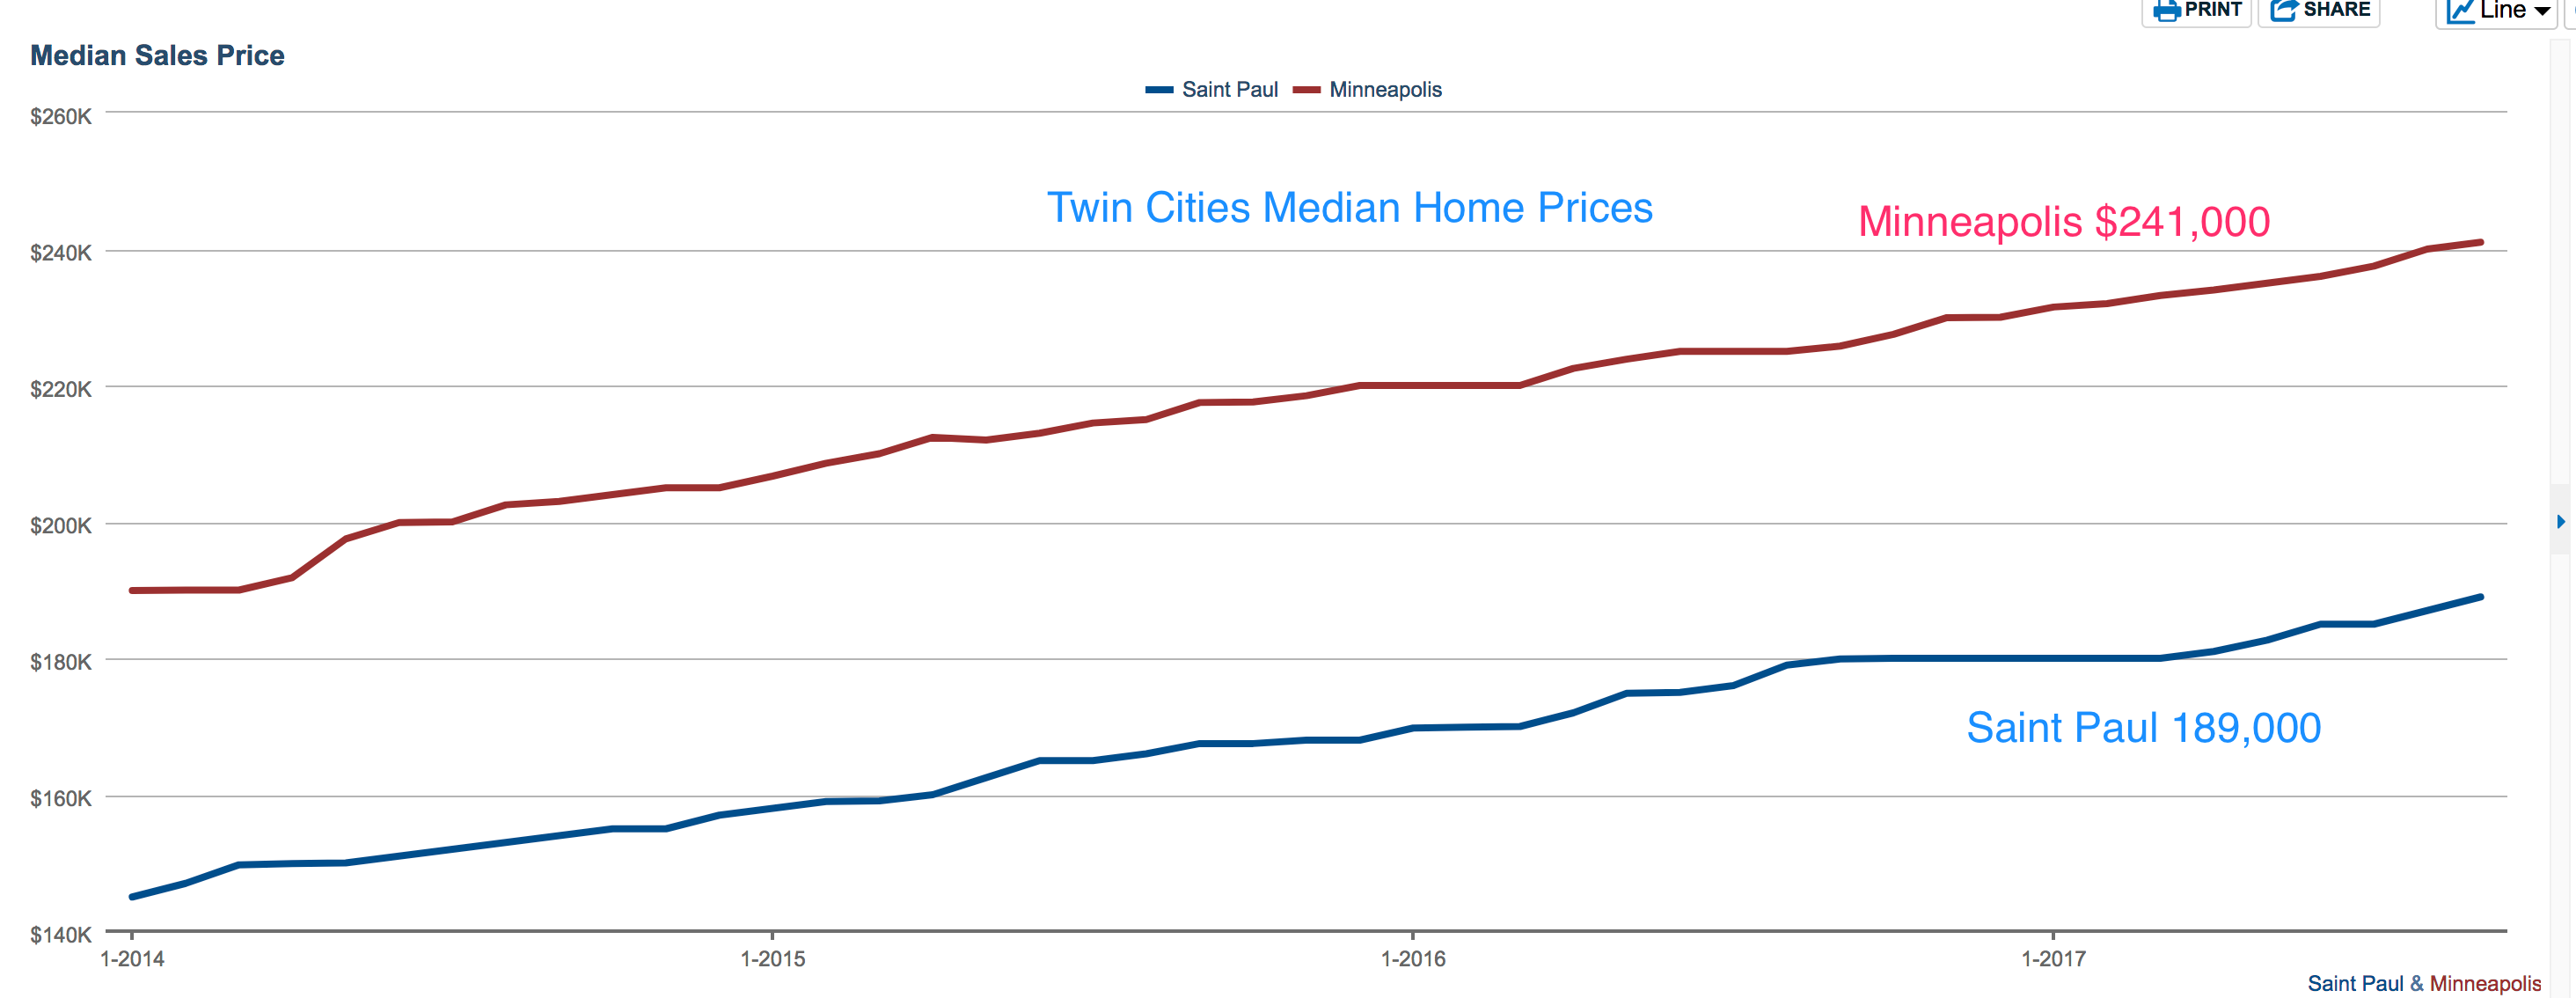 chart of median home prices